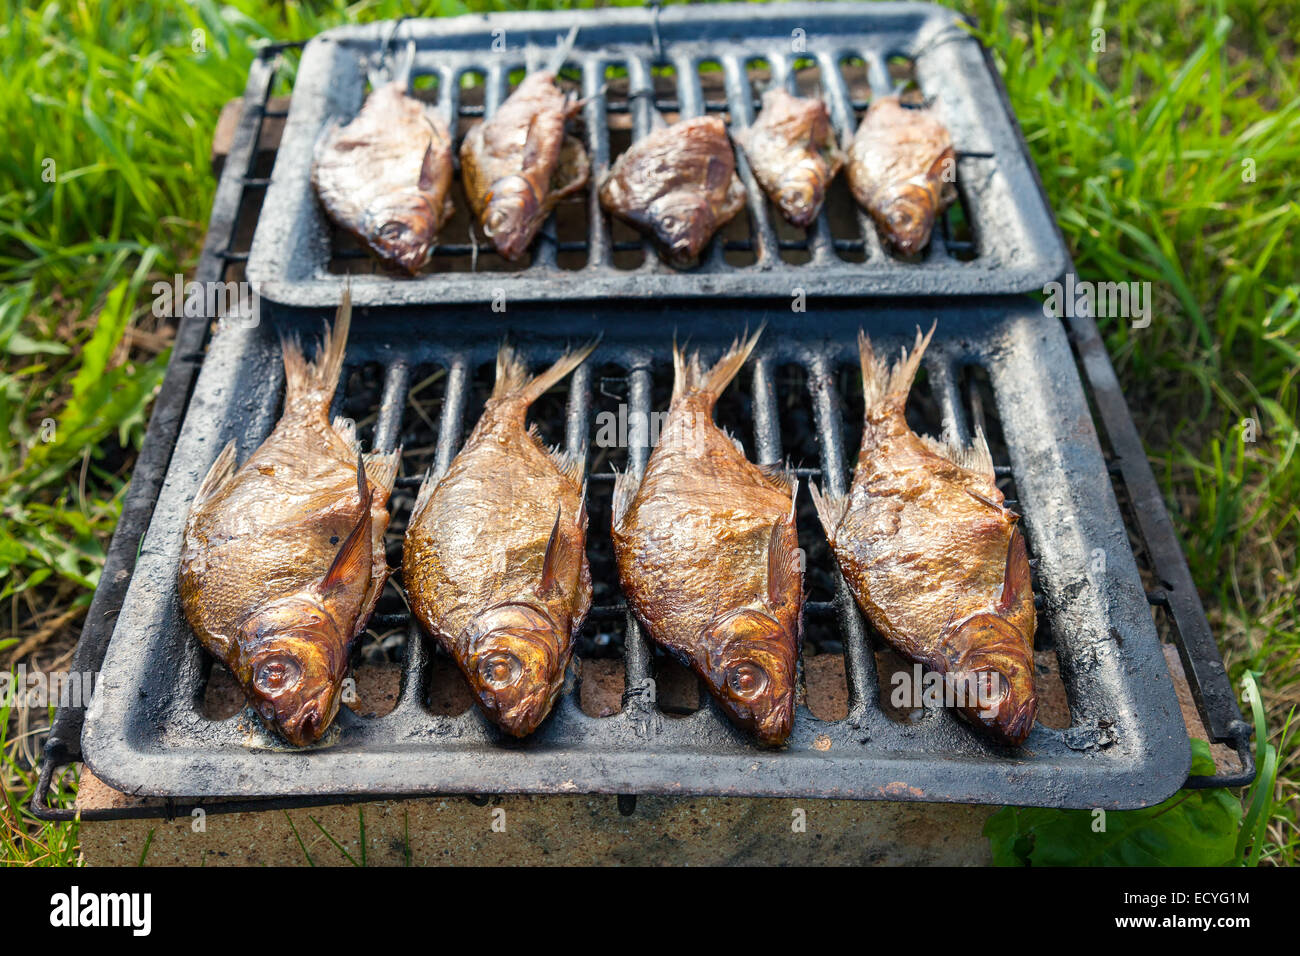 Smoked fish home cooking on the outdoors - Stock Image